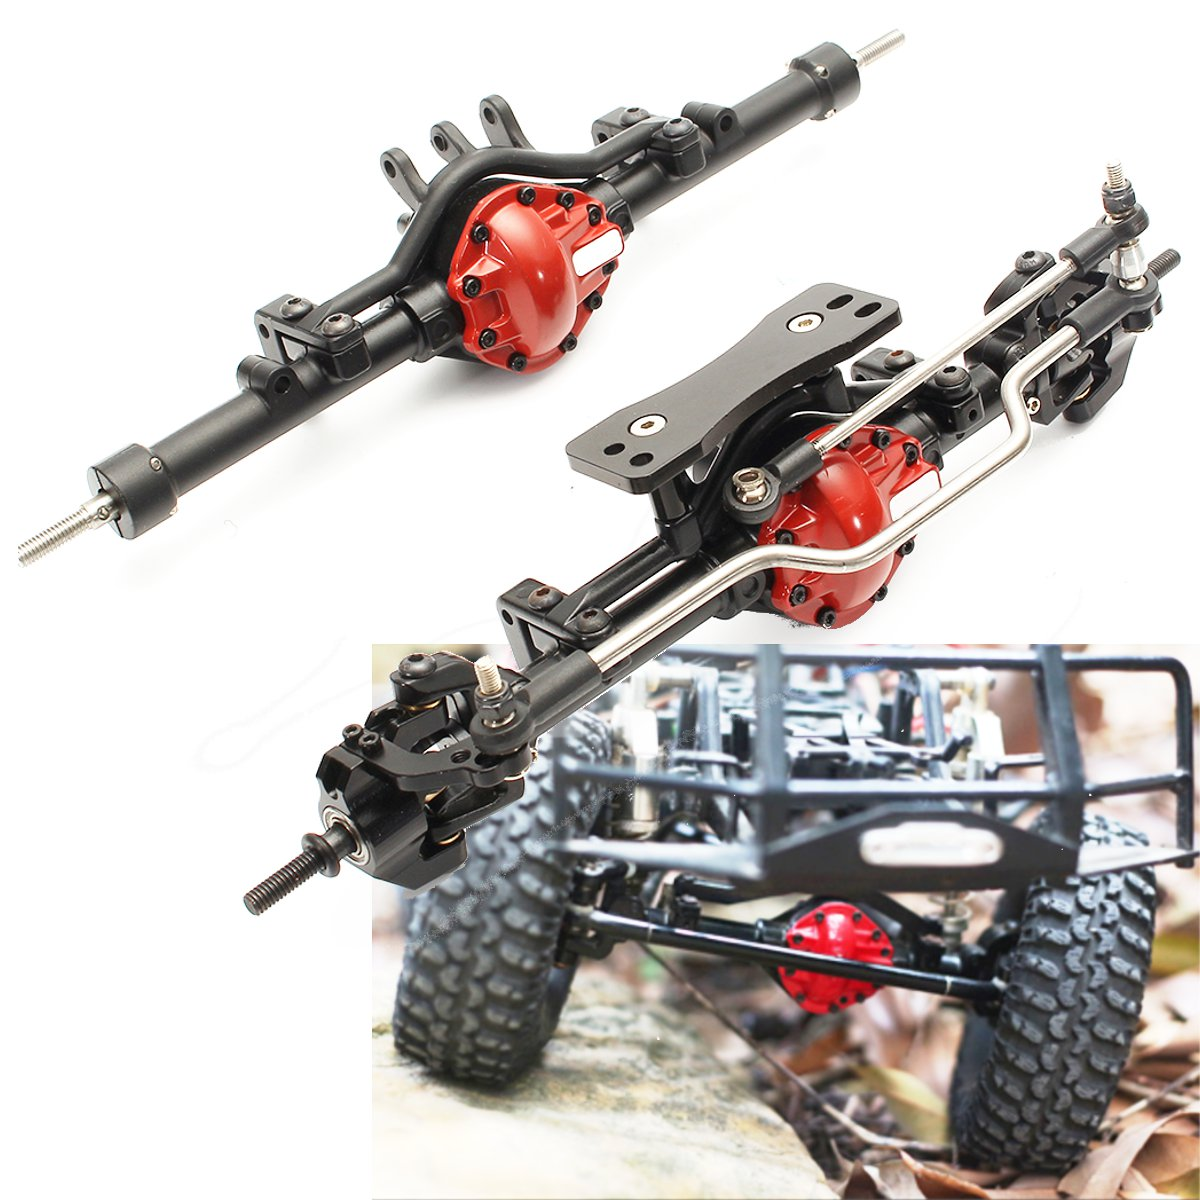 1/10 Complete Alloy Front+Rear Axle For 1:10 Rc Rock Crawler D90 Scx10 RC4WD ARB rc car 1 10 metal complete alloy front and rear axles for 1 10 rc crawler d90 scx10 rc4wd axial yota 2